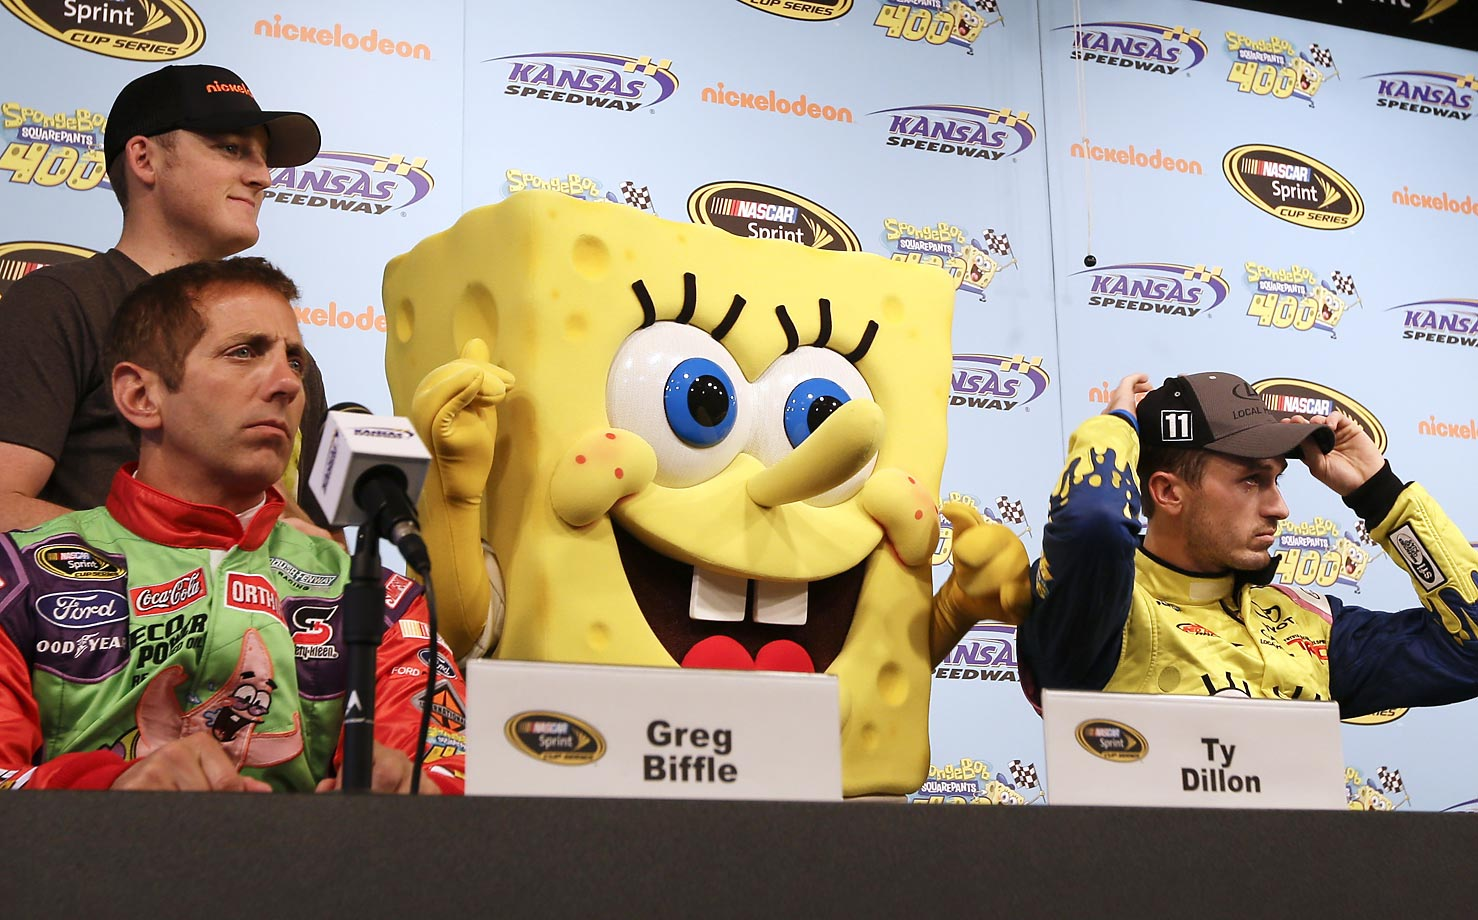 Greg Biffle (left), SpongeBob, and Ben Kennedy at a news conference for the Sprint Cup Series auto race at Kansas Speedway. The race is named the SpongeBob Square Pants 400.